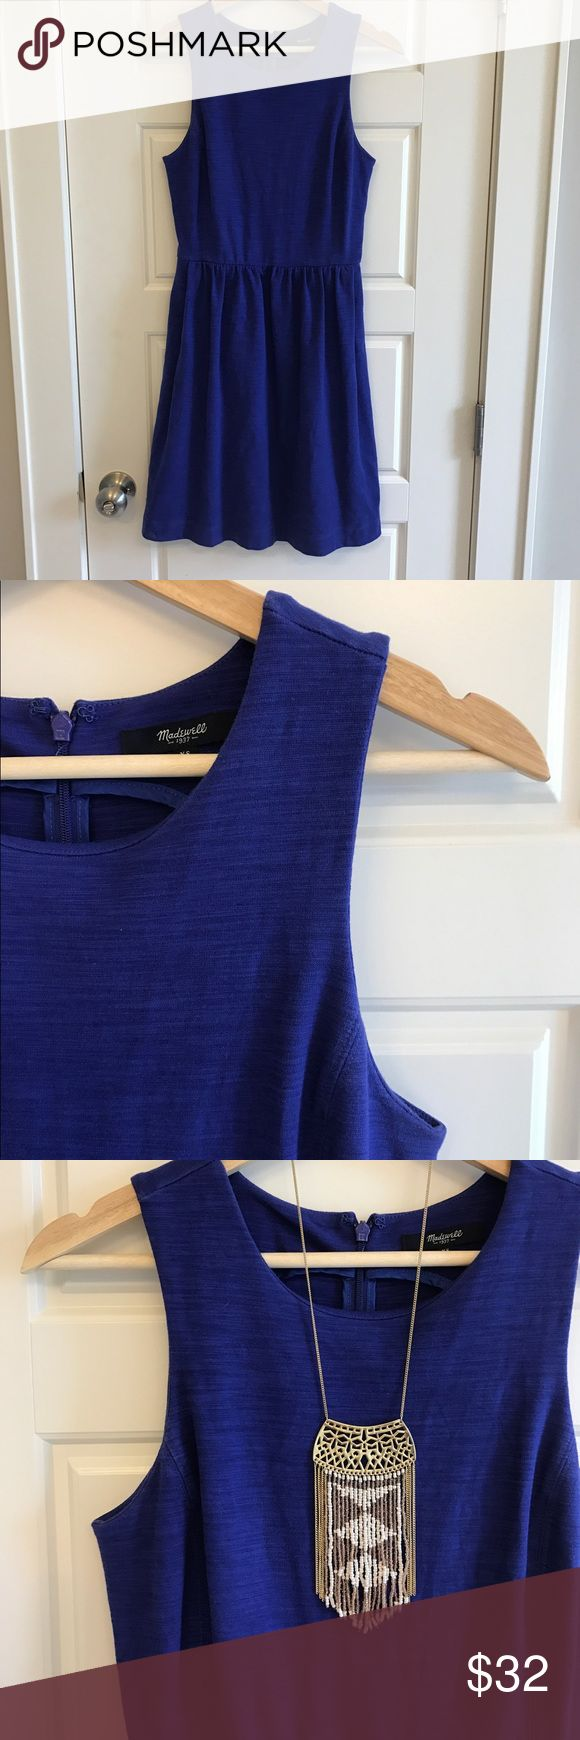 Madewell fit n flare Dress Nothing better than a one stop outfit for summer! In excellent condition with pockets. Deep purple color. Nice thick material Madewell Dresses